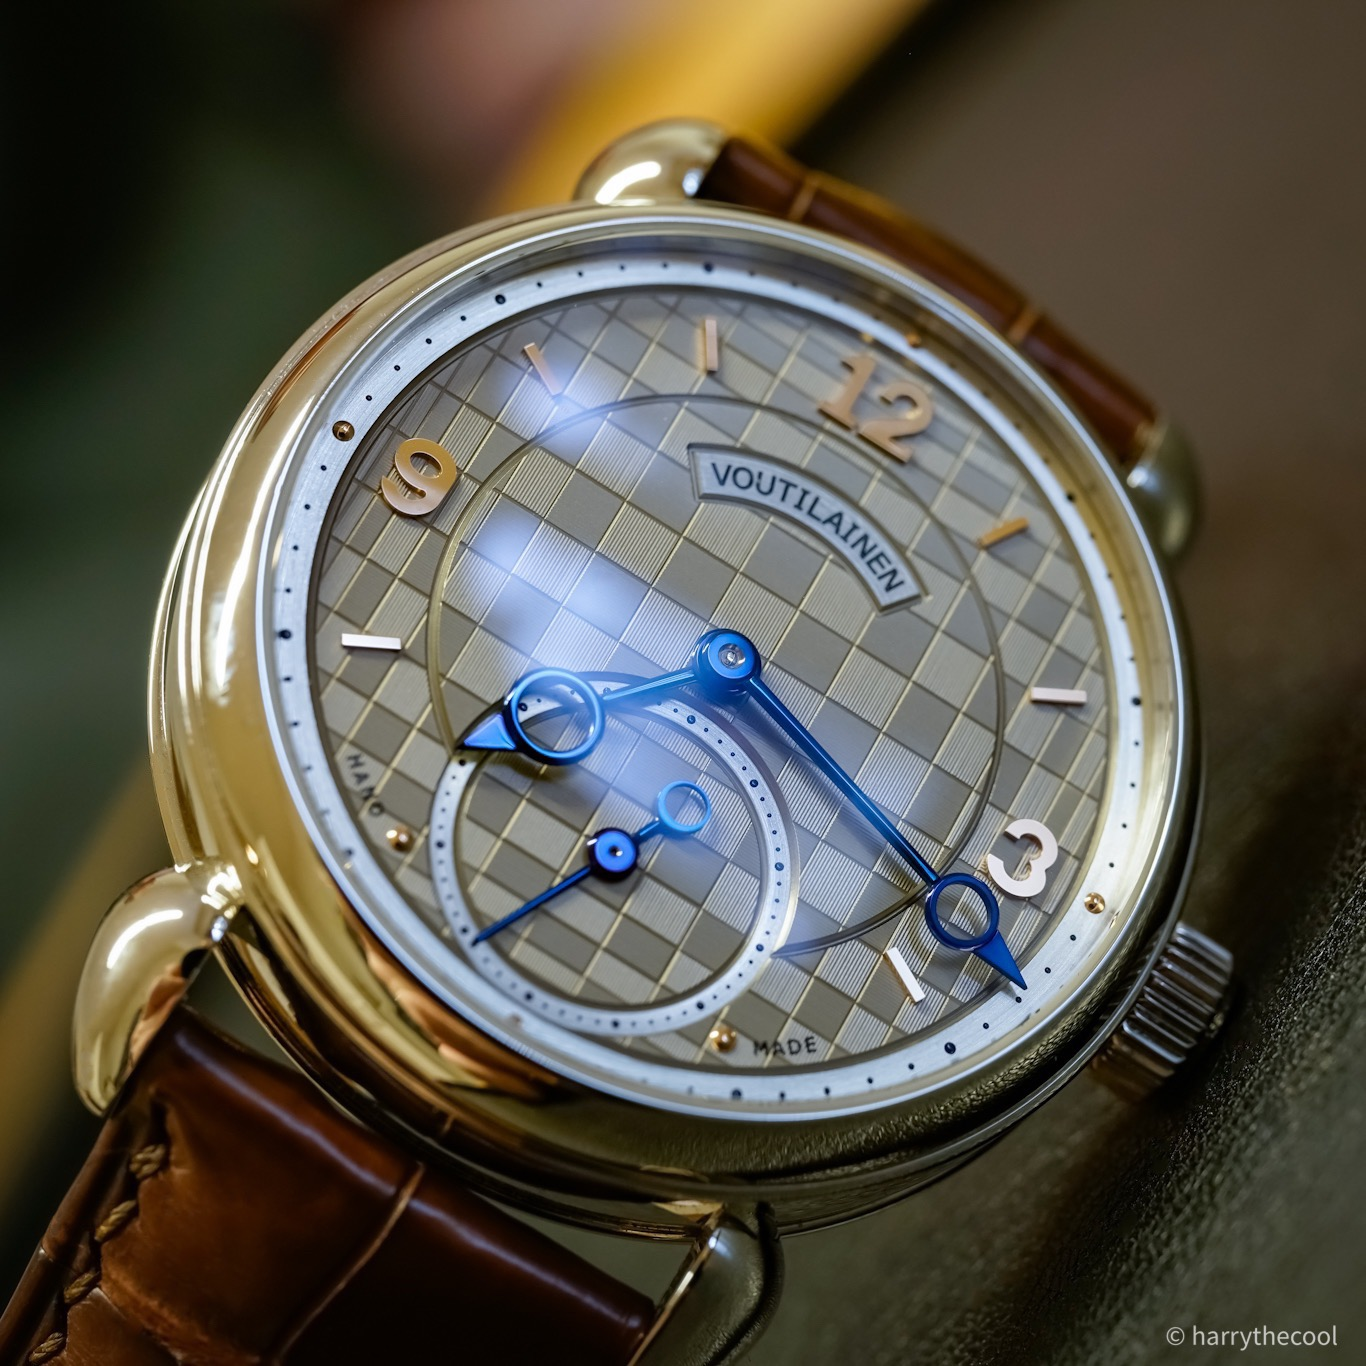 How can something handmade be so beautiful - masterpiece Vingt 8 by master Voutilainen